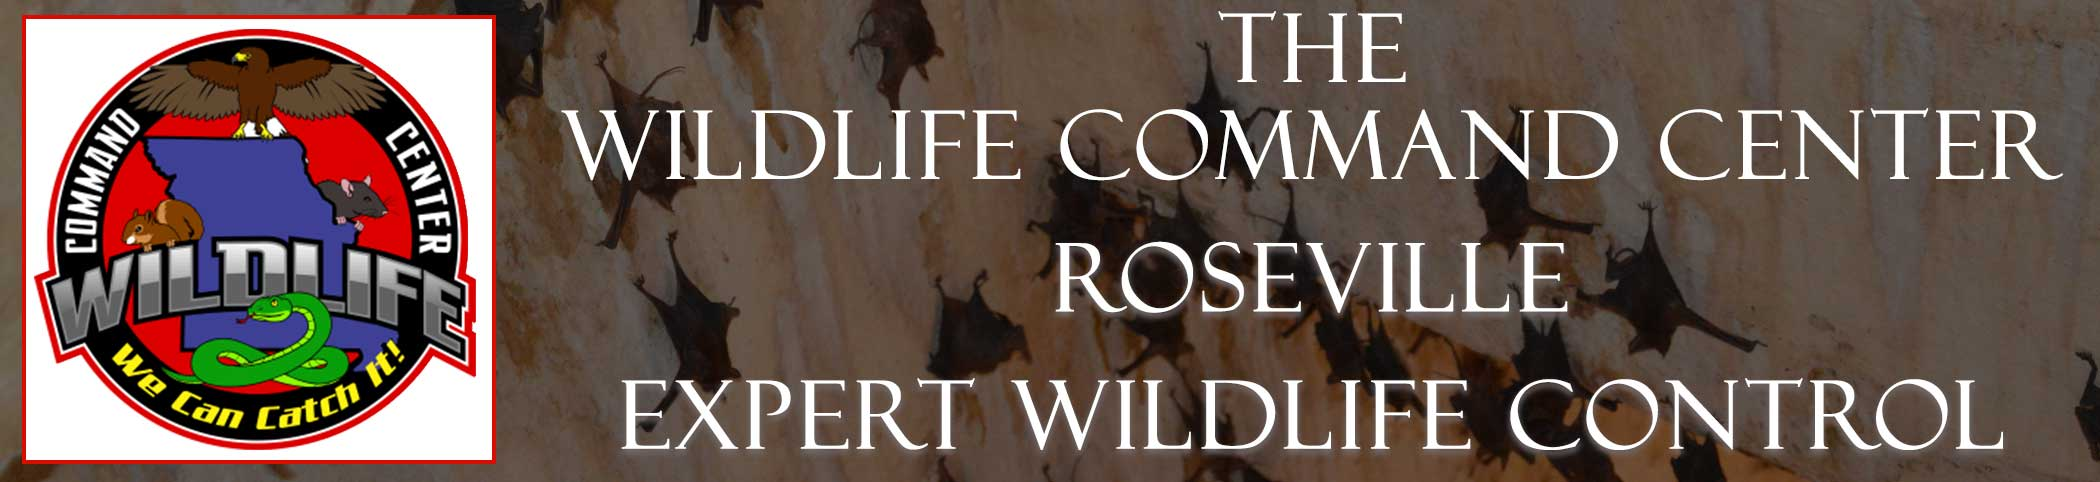 roseville-wildlife-command-center